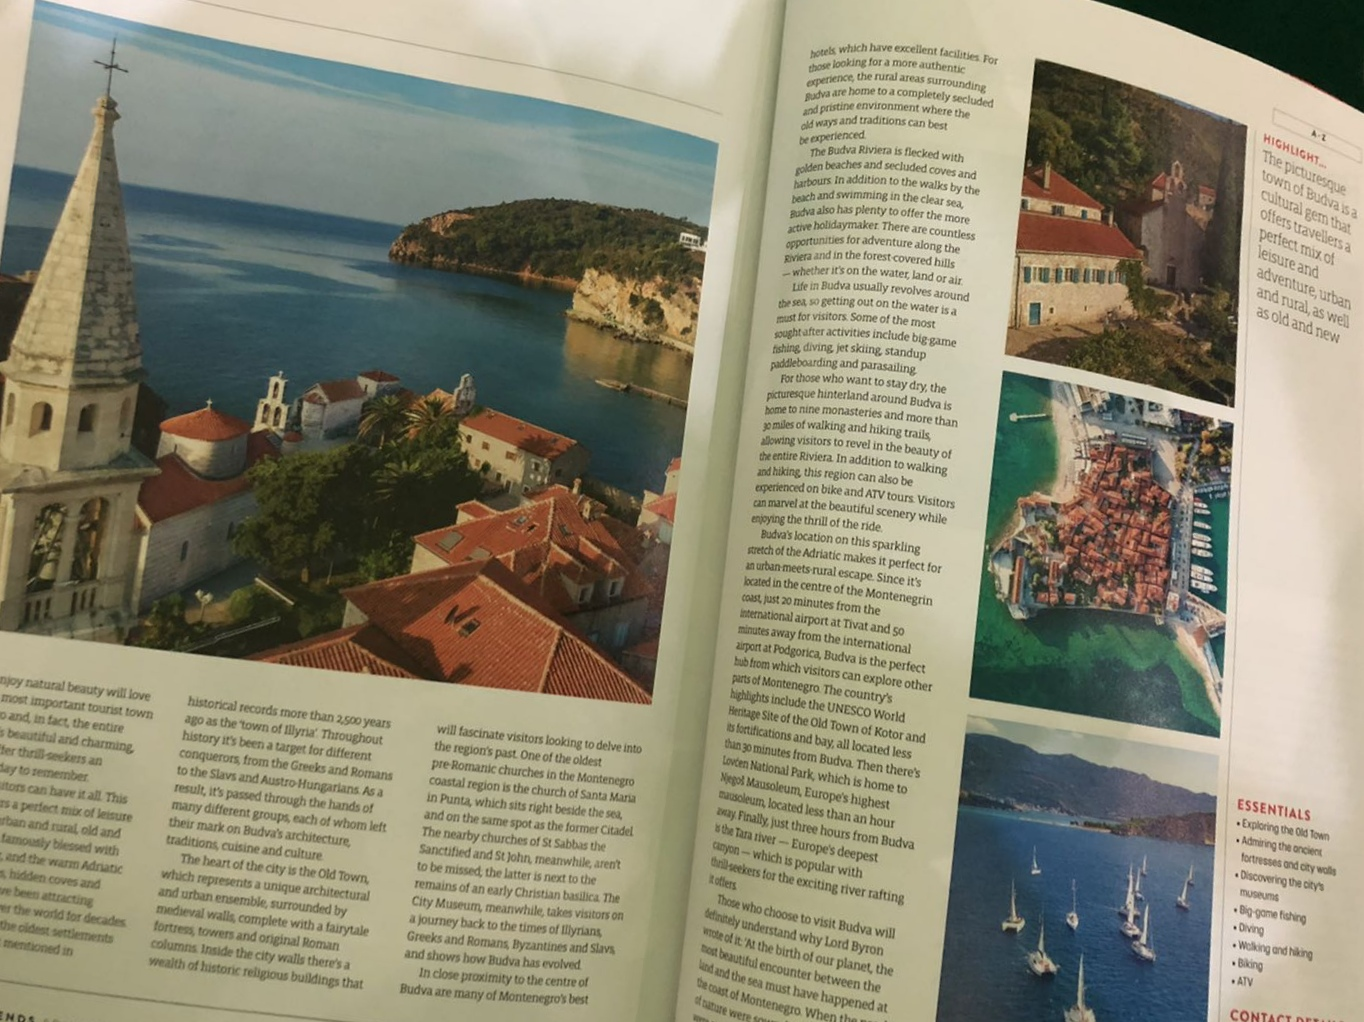 budva-hotels budva-activities budva-sea budva-weather budva-old-town